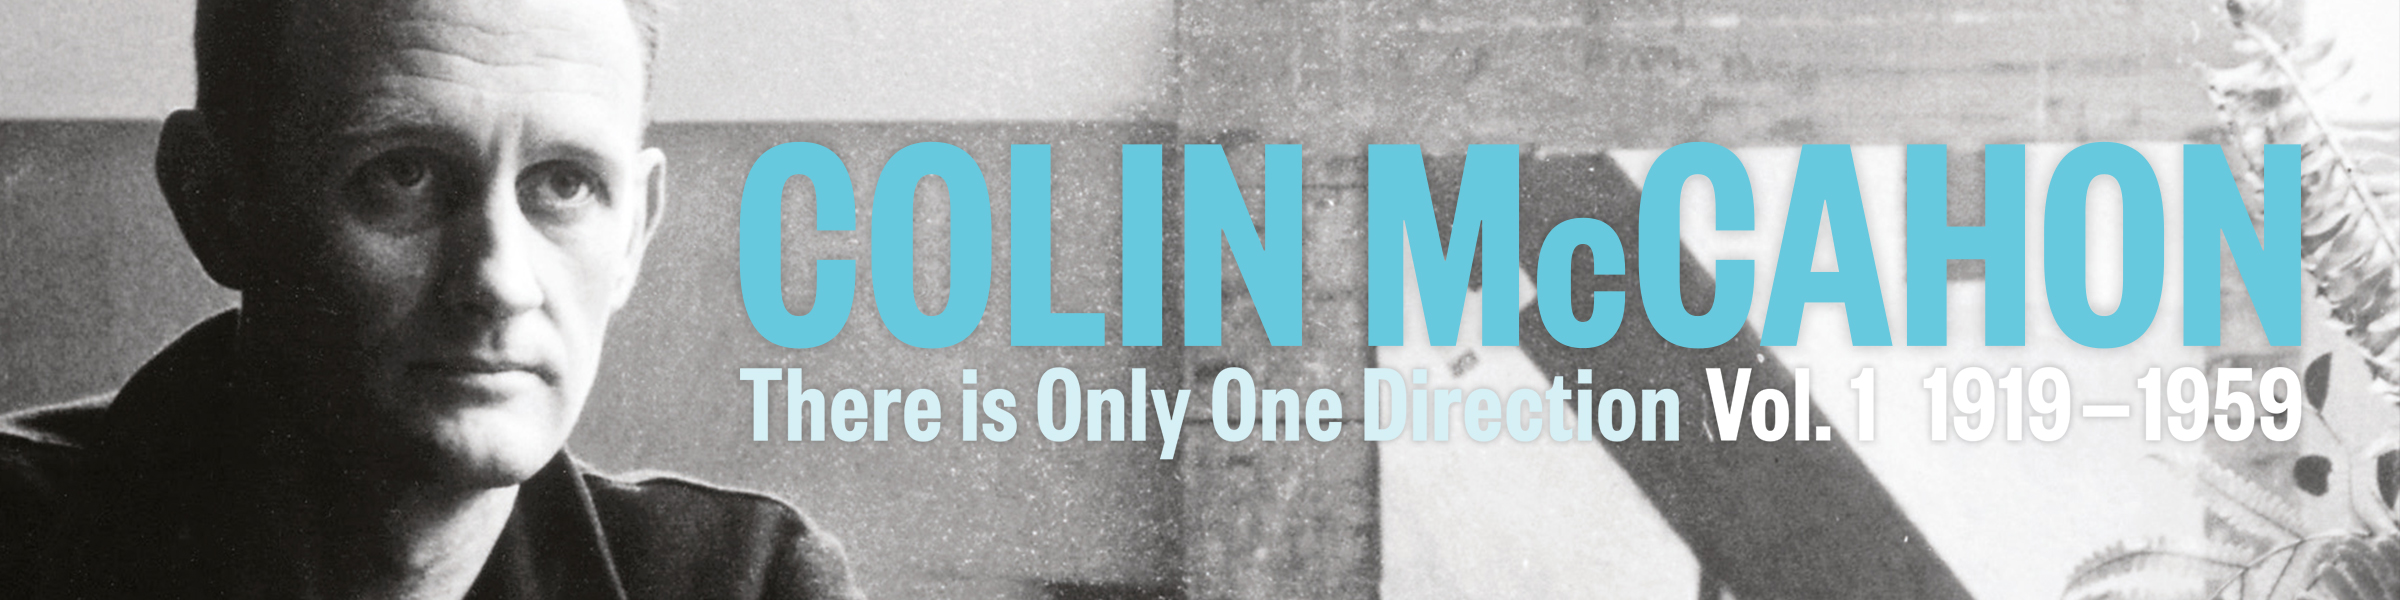 Colin McCahon – There is Only One Direction Vol. 1 1919-1959 by Peter Simpson